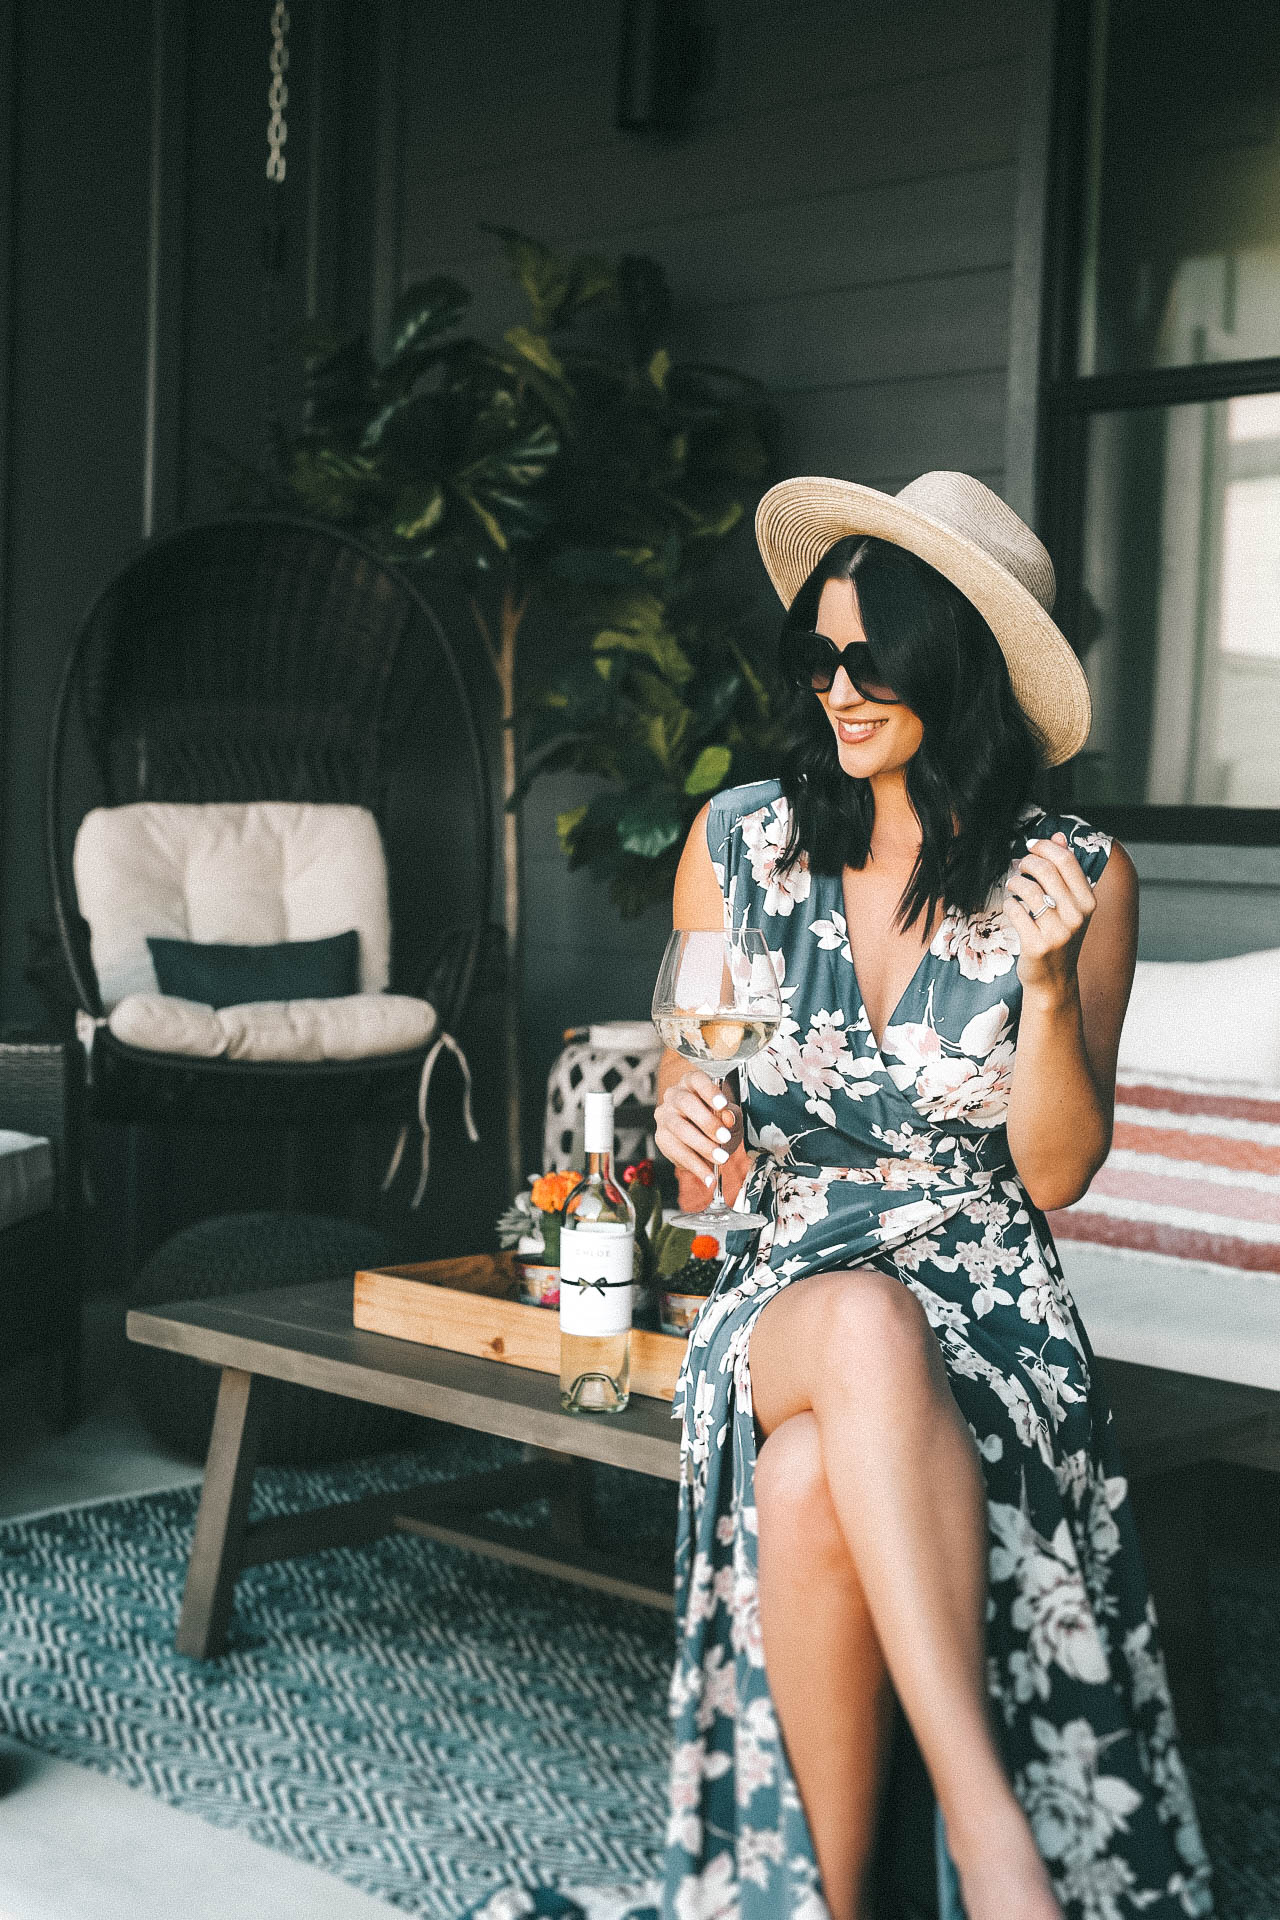 Celebrating Women in Film with Chloe Wine Collection by popular Austin life and style blog, Dressed to Kill: image of a woman sitting on an outdoor coffee table and holding a wine glass with Chloe pinot grigio wine in it with the Chloe wine bottle resting next to her.